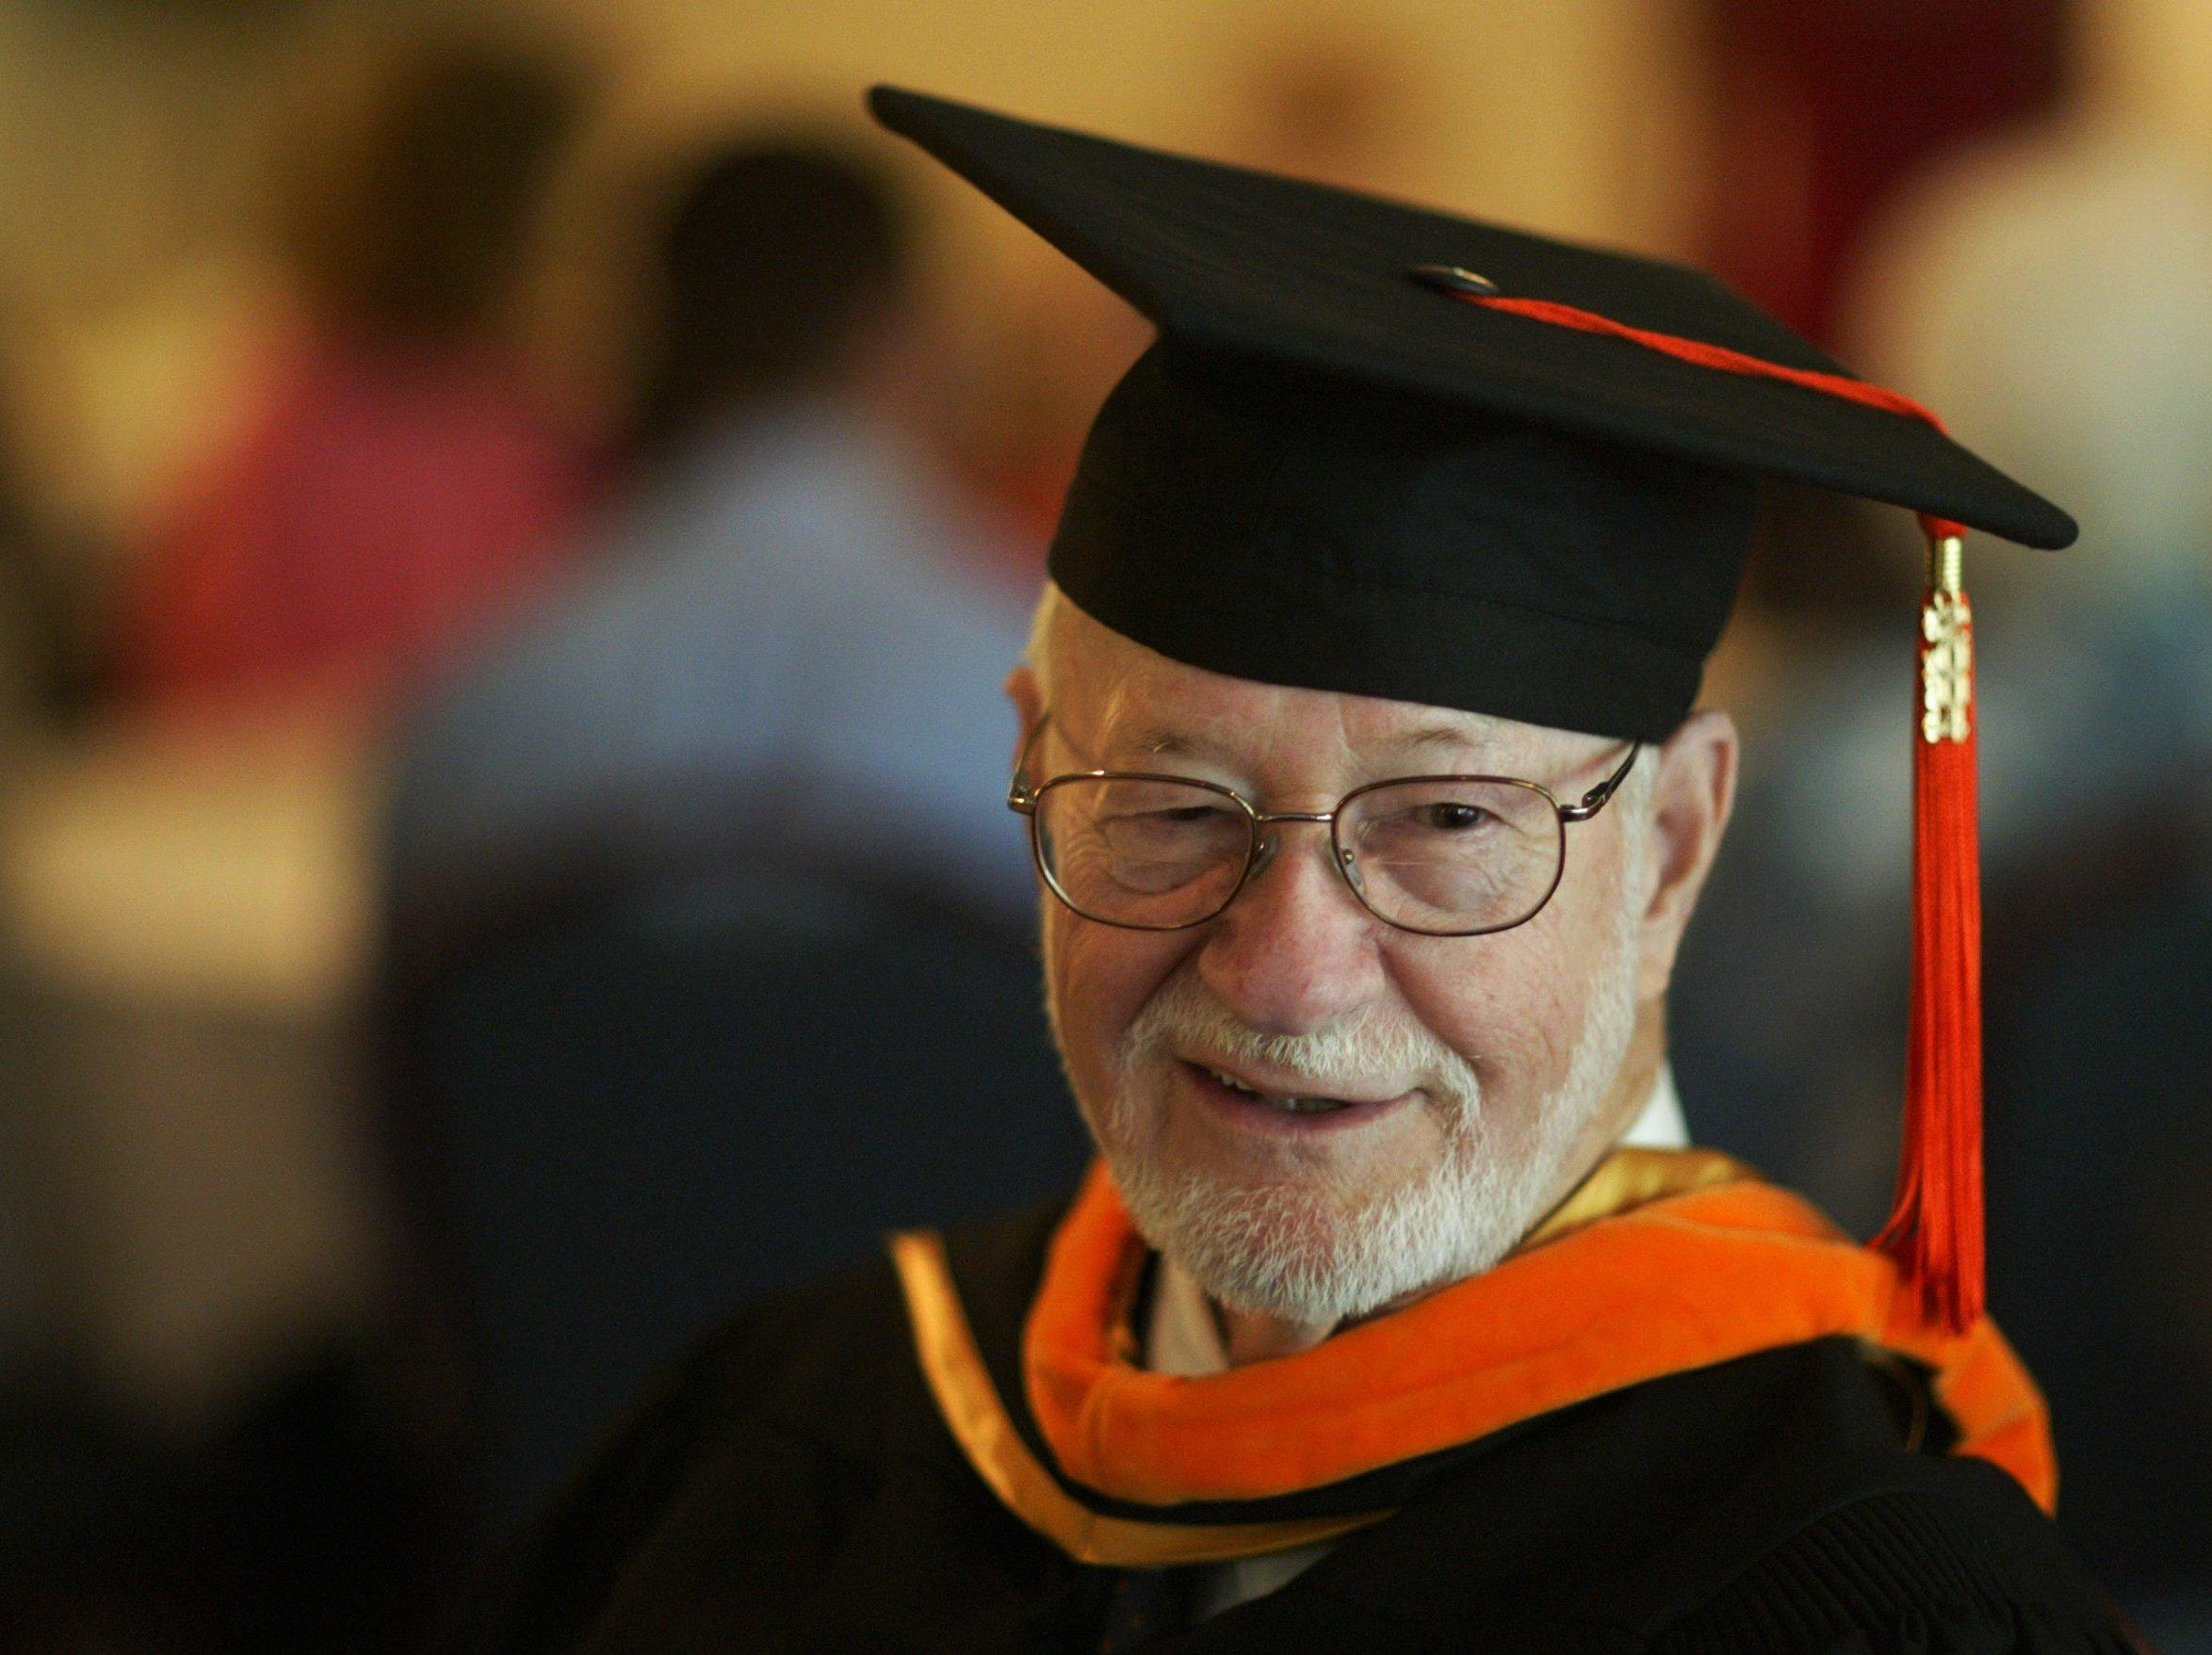 It took 55 years, but a happy William Morrison, 80, received his Masters Degree at the Vanderbilt graduation on Friday, May 14, 2004.